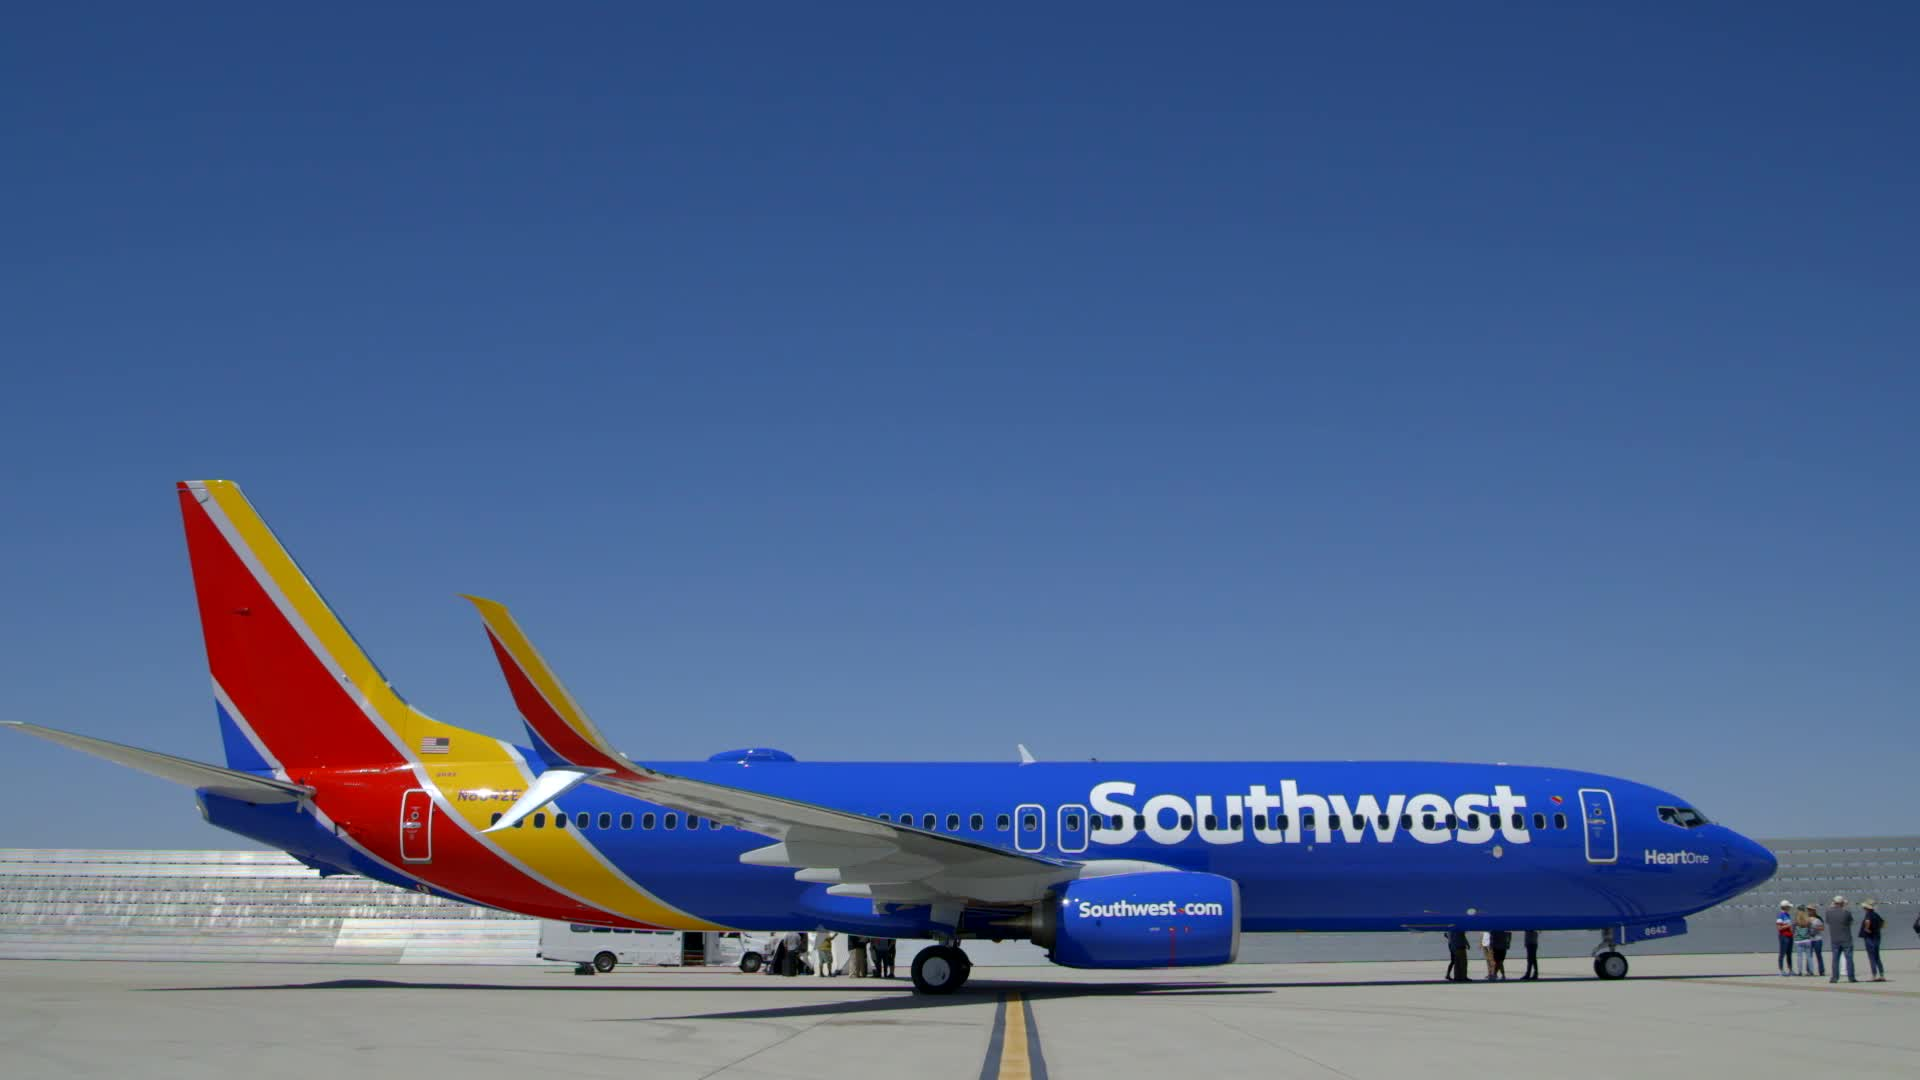 After over a year of rumors, Southwest is now revealing more details on its upcoming flights to Hawaii. The airline announced on Thursday plans to offer service from four California airports.